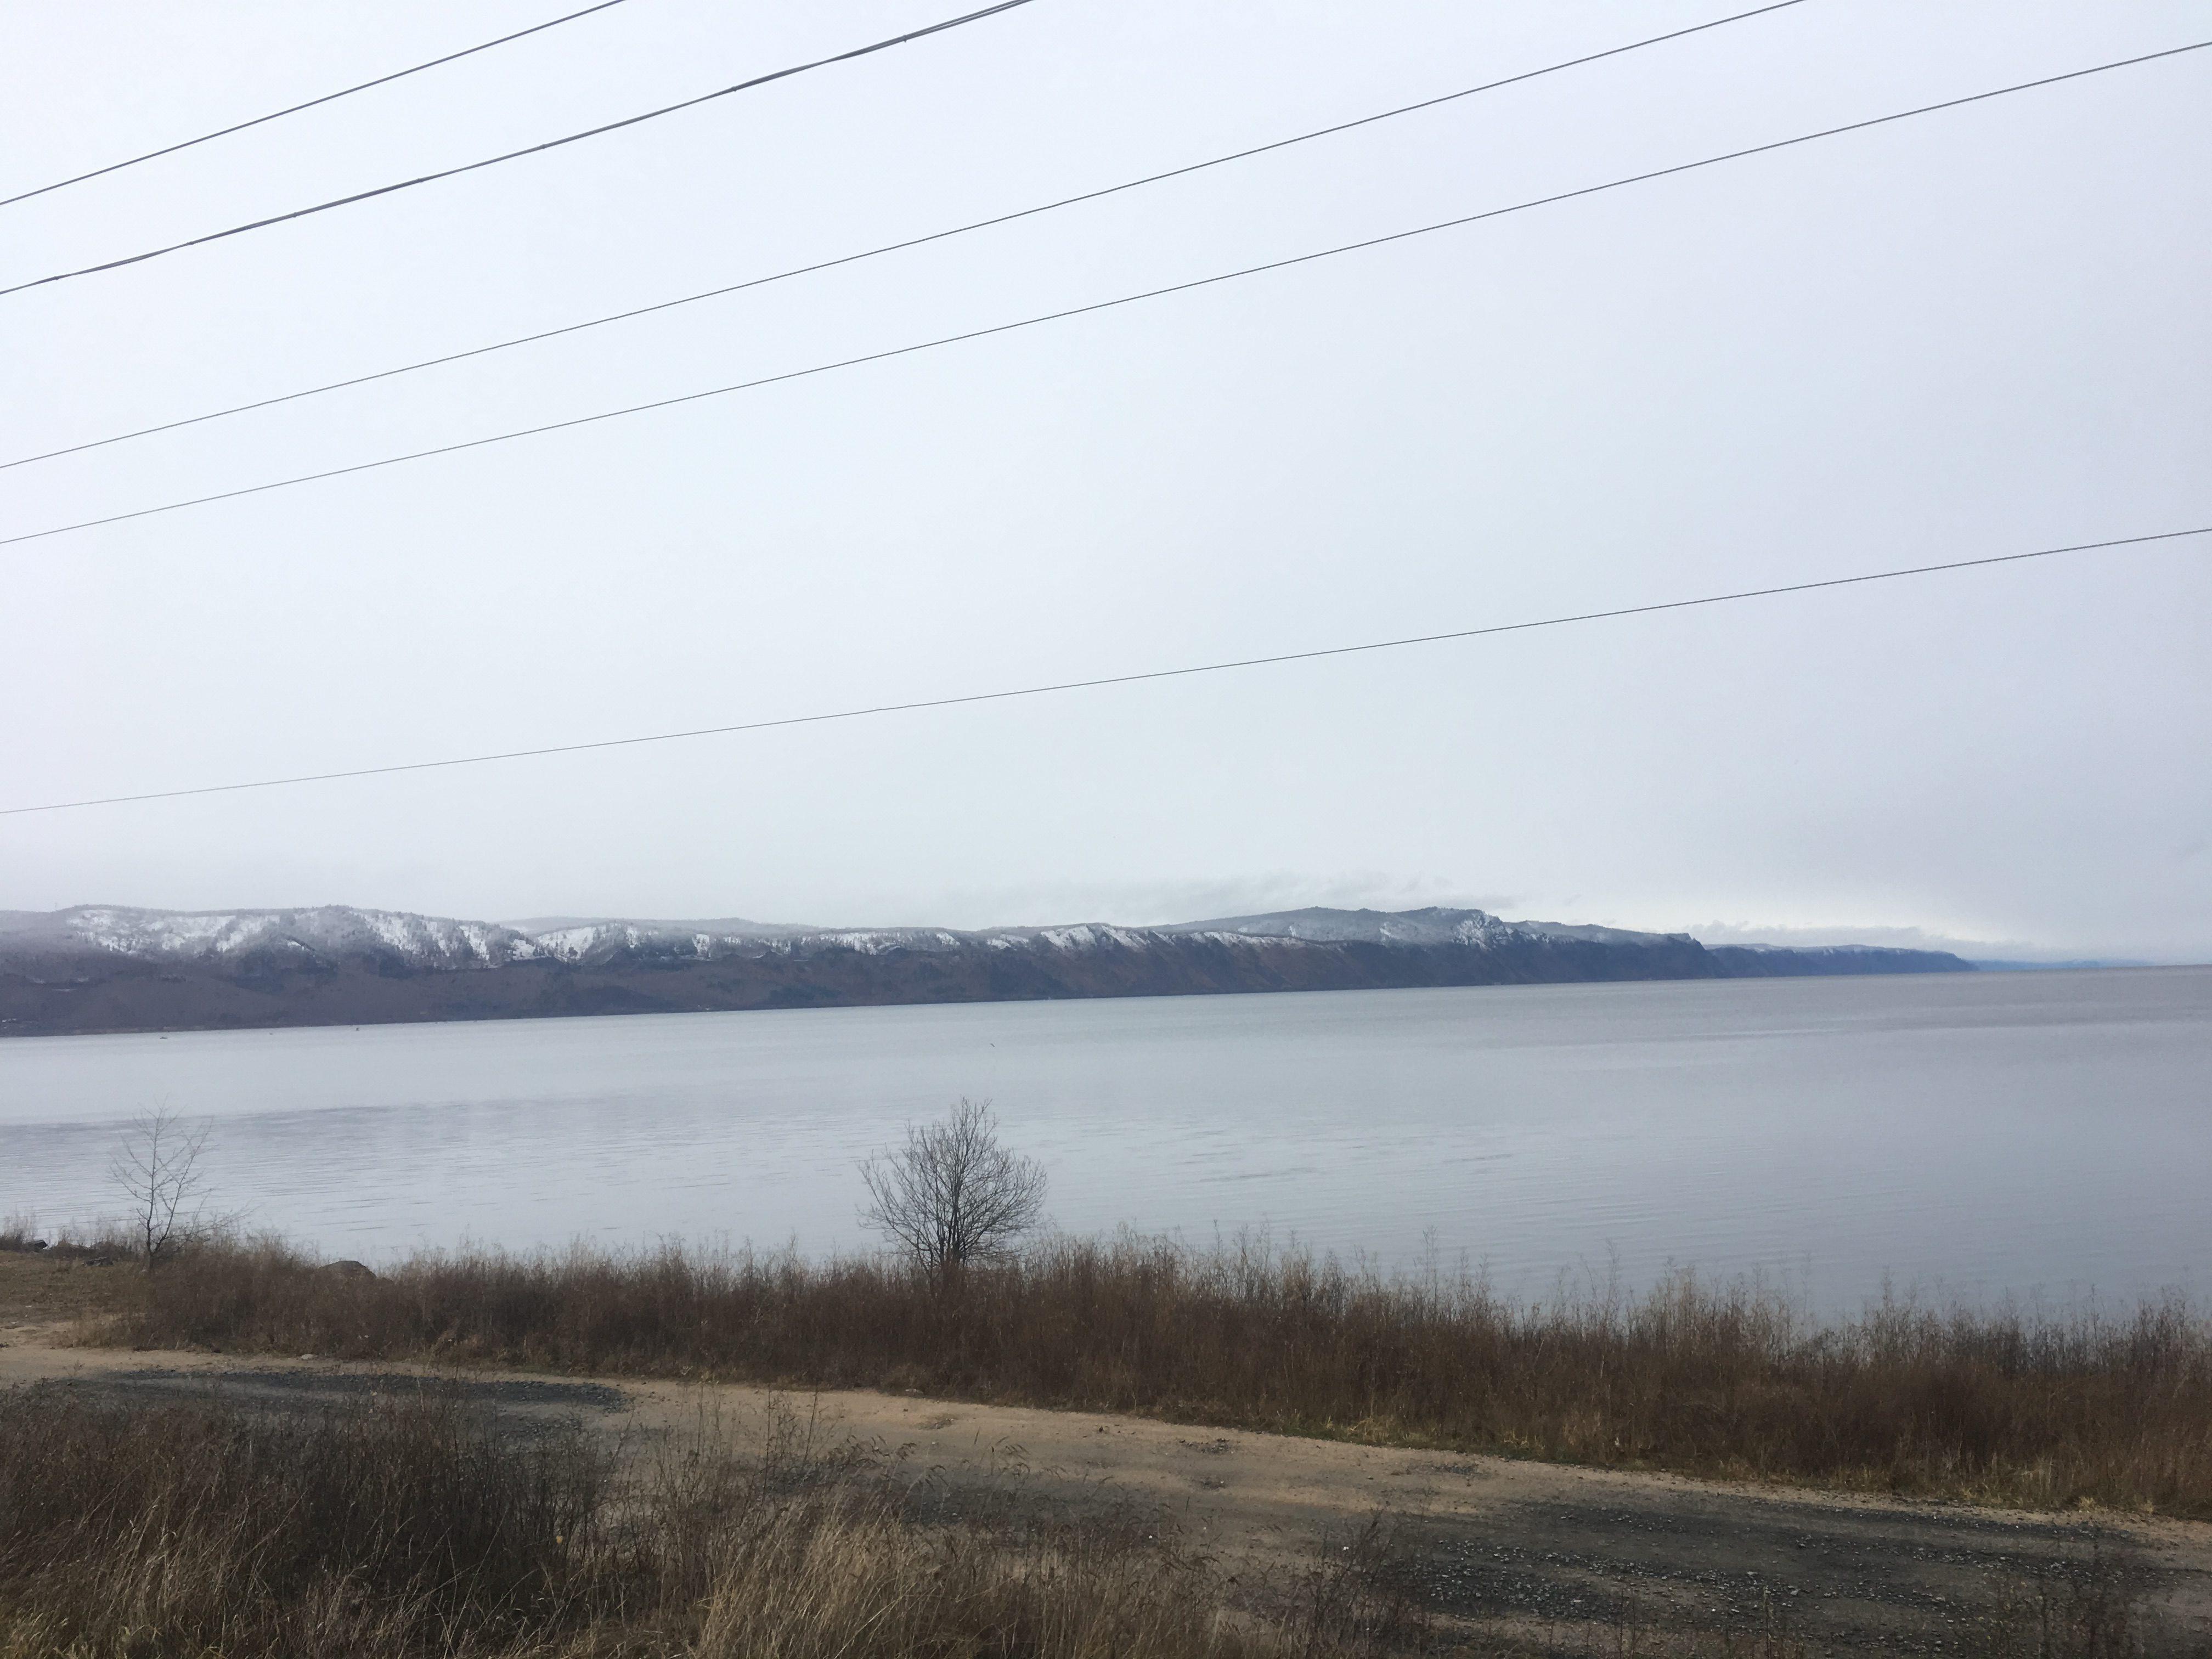 Snow-capped hills by Lake Baikal